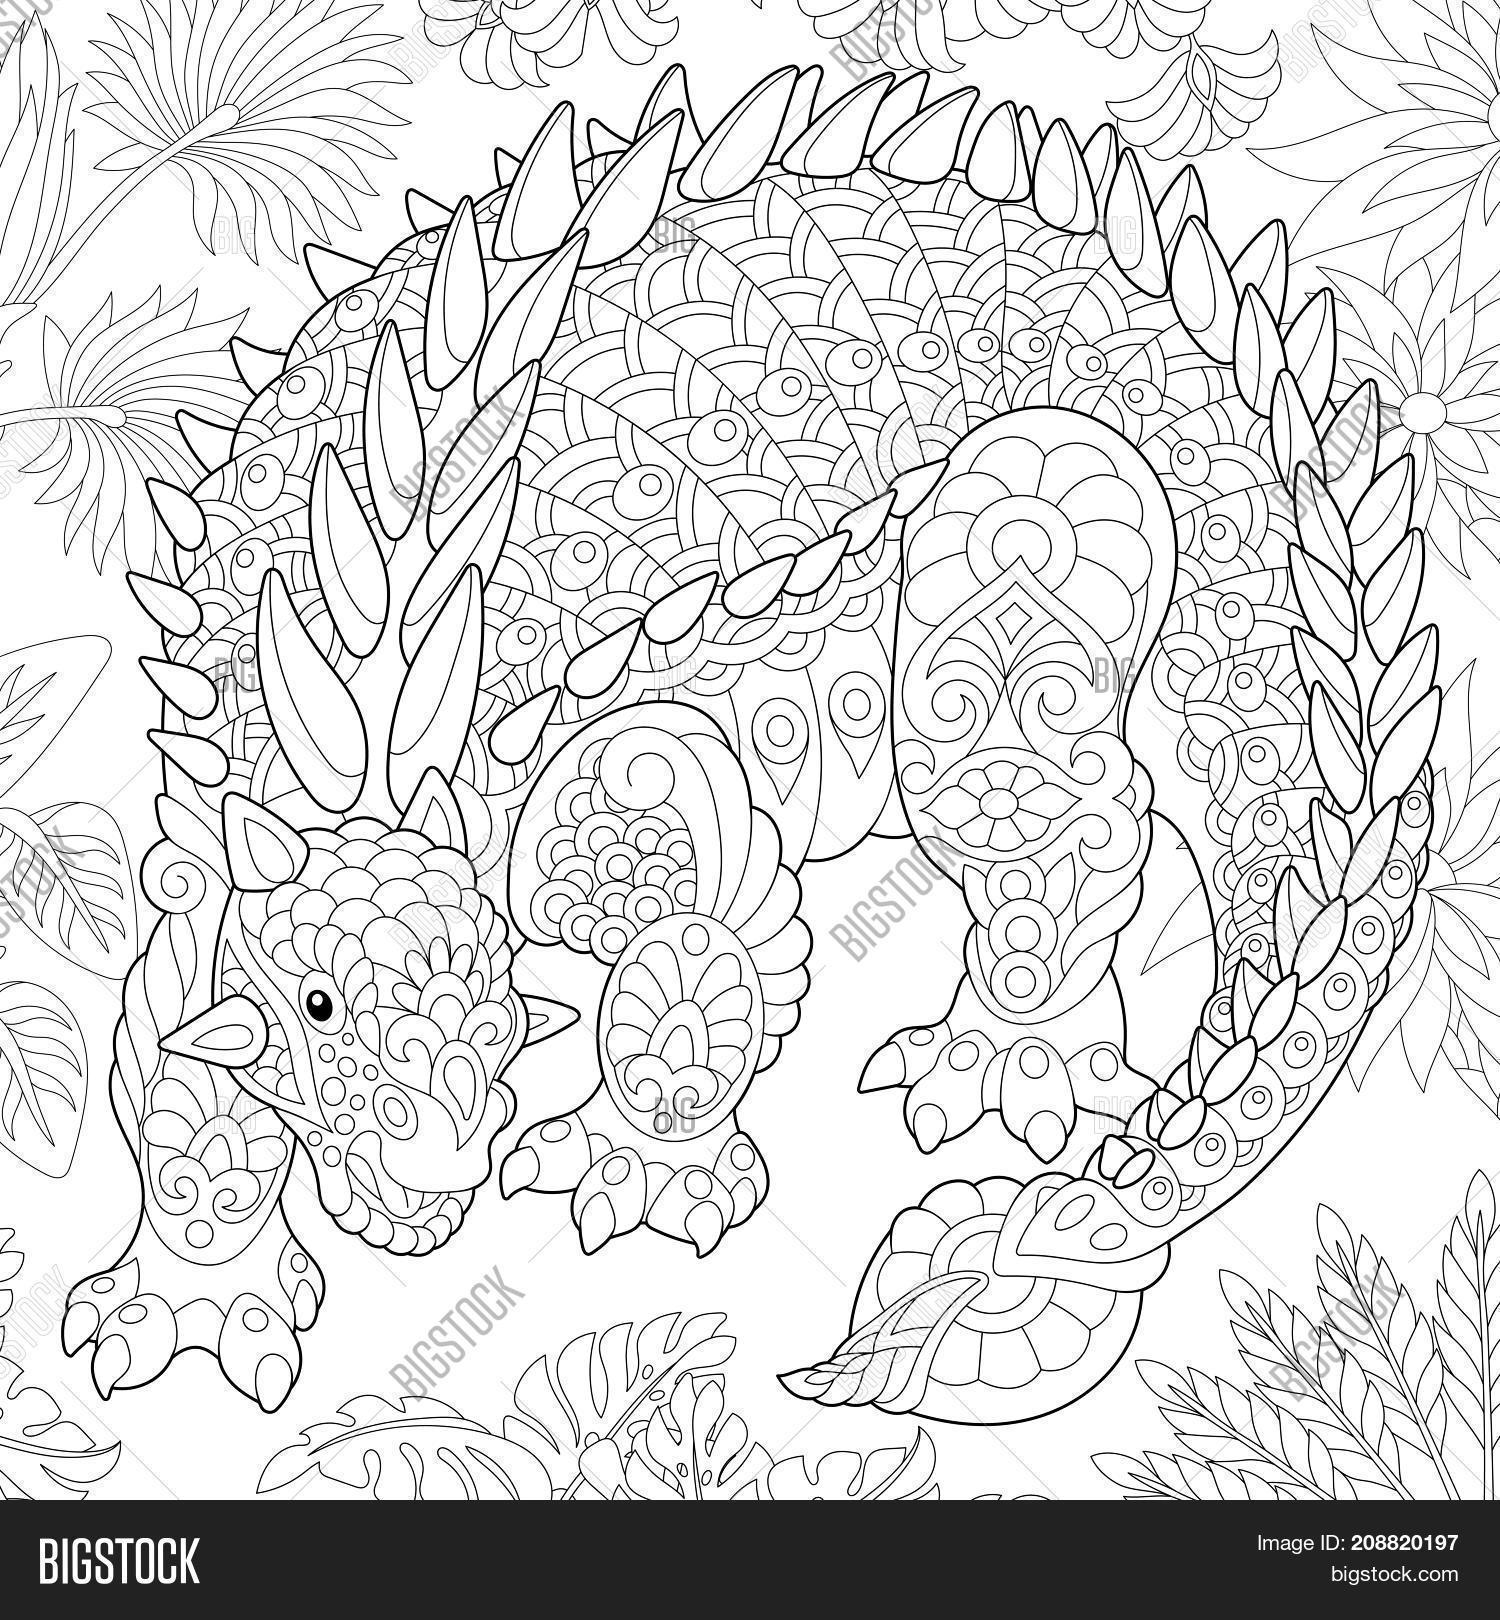 Coloring Page Image & Photo (Free Trial)   Bigstock